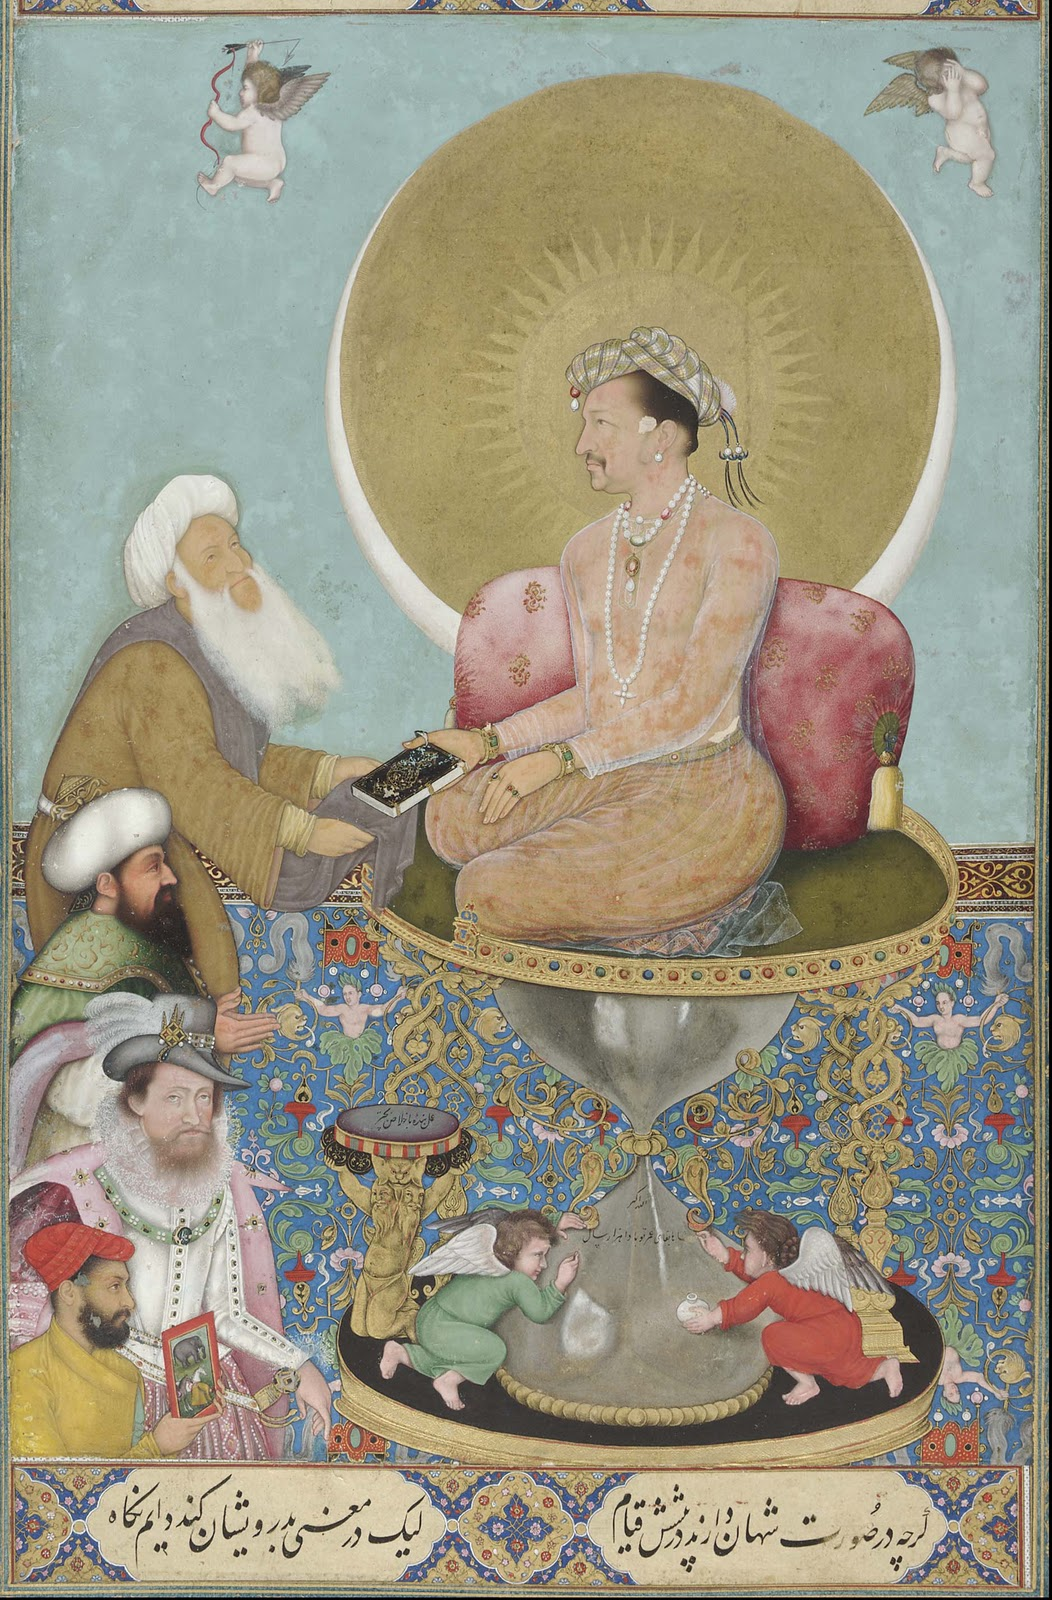 Jahangir S Turkey Early Modern Globalization And Exotic